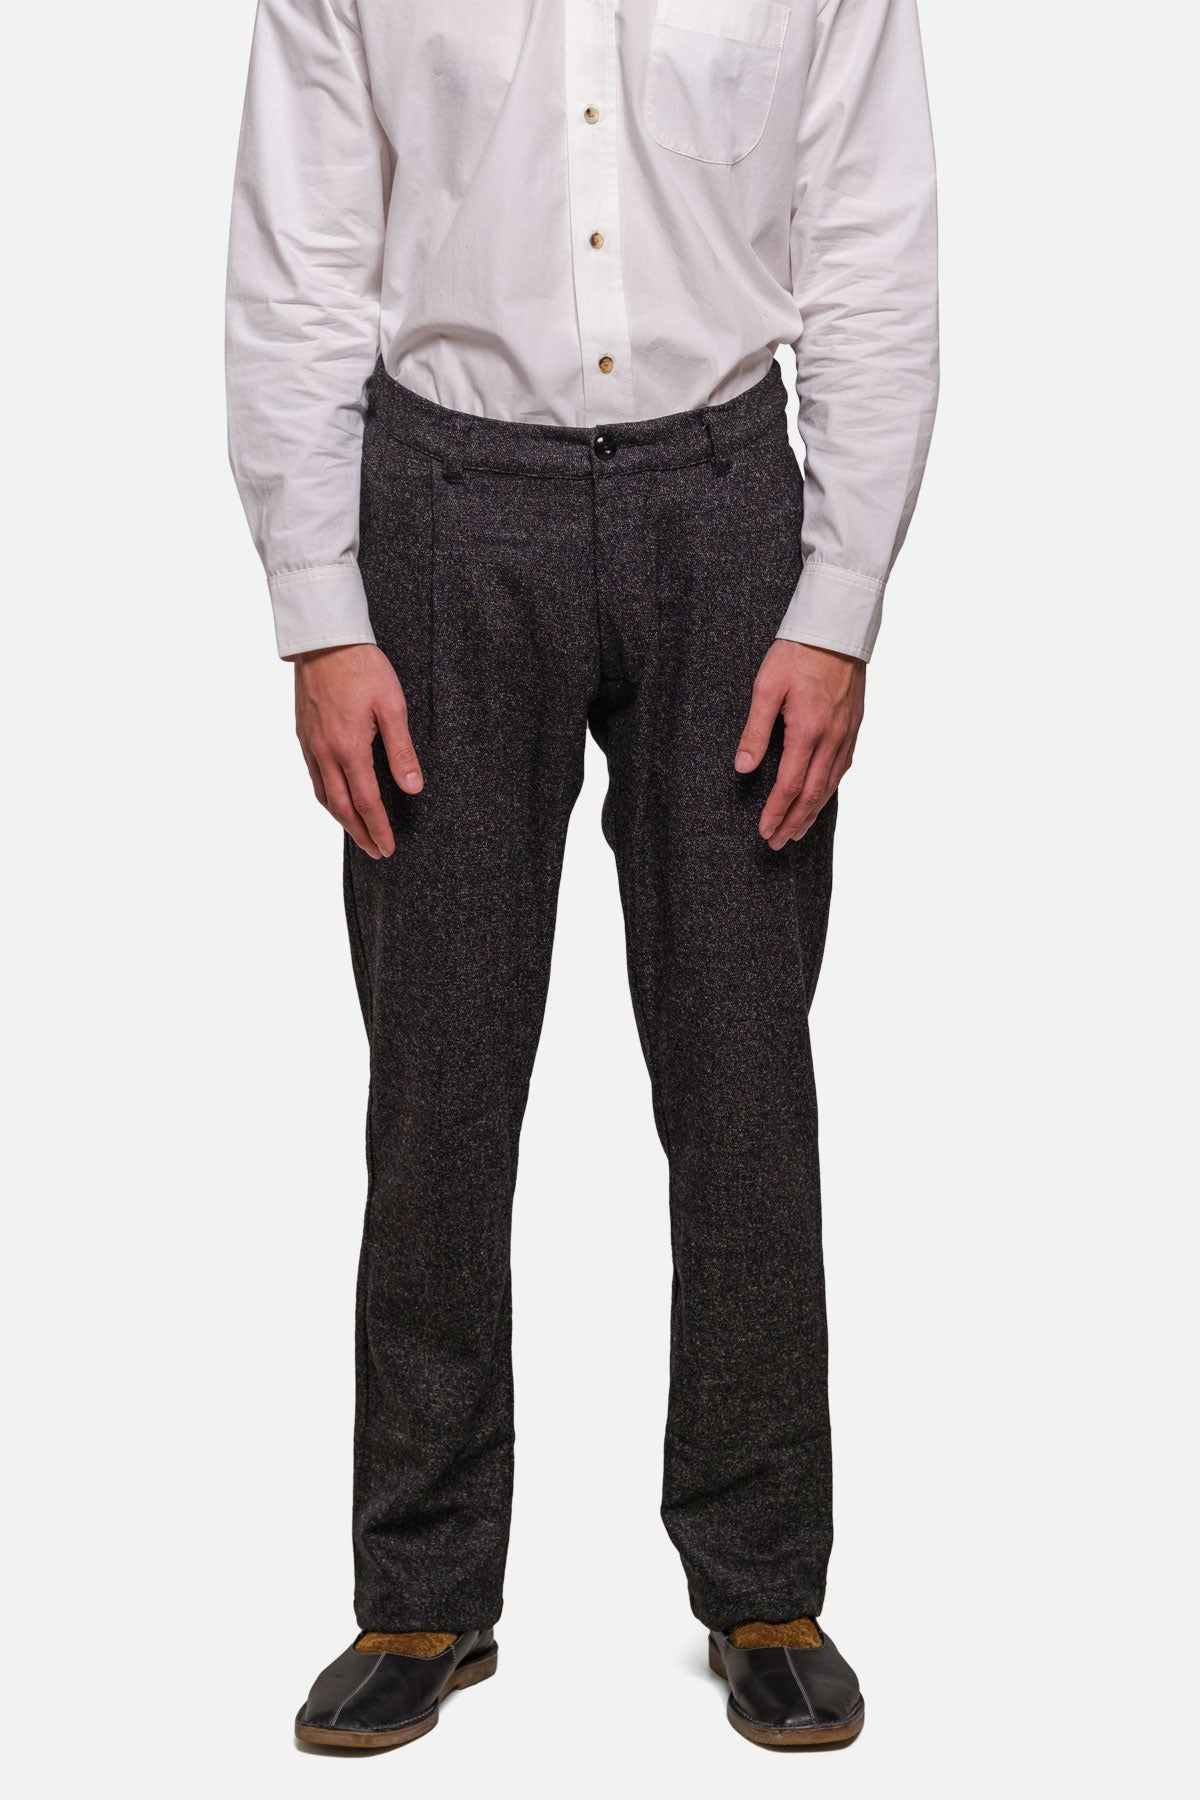 SINGLE PLEAT TROUSER IN BLACK TWEED - Fortune Goods